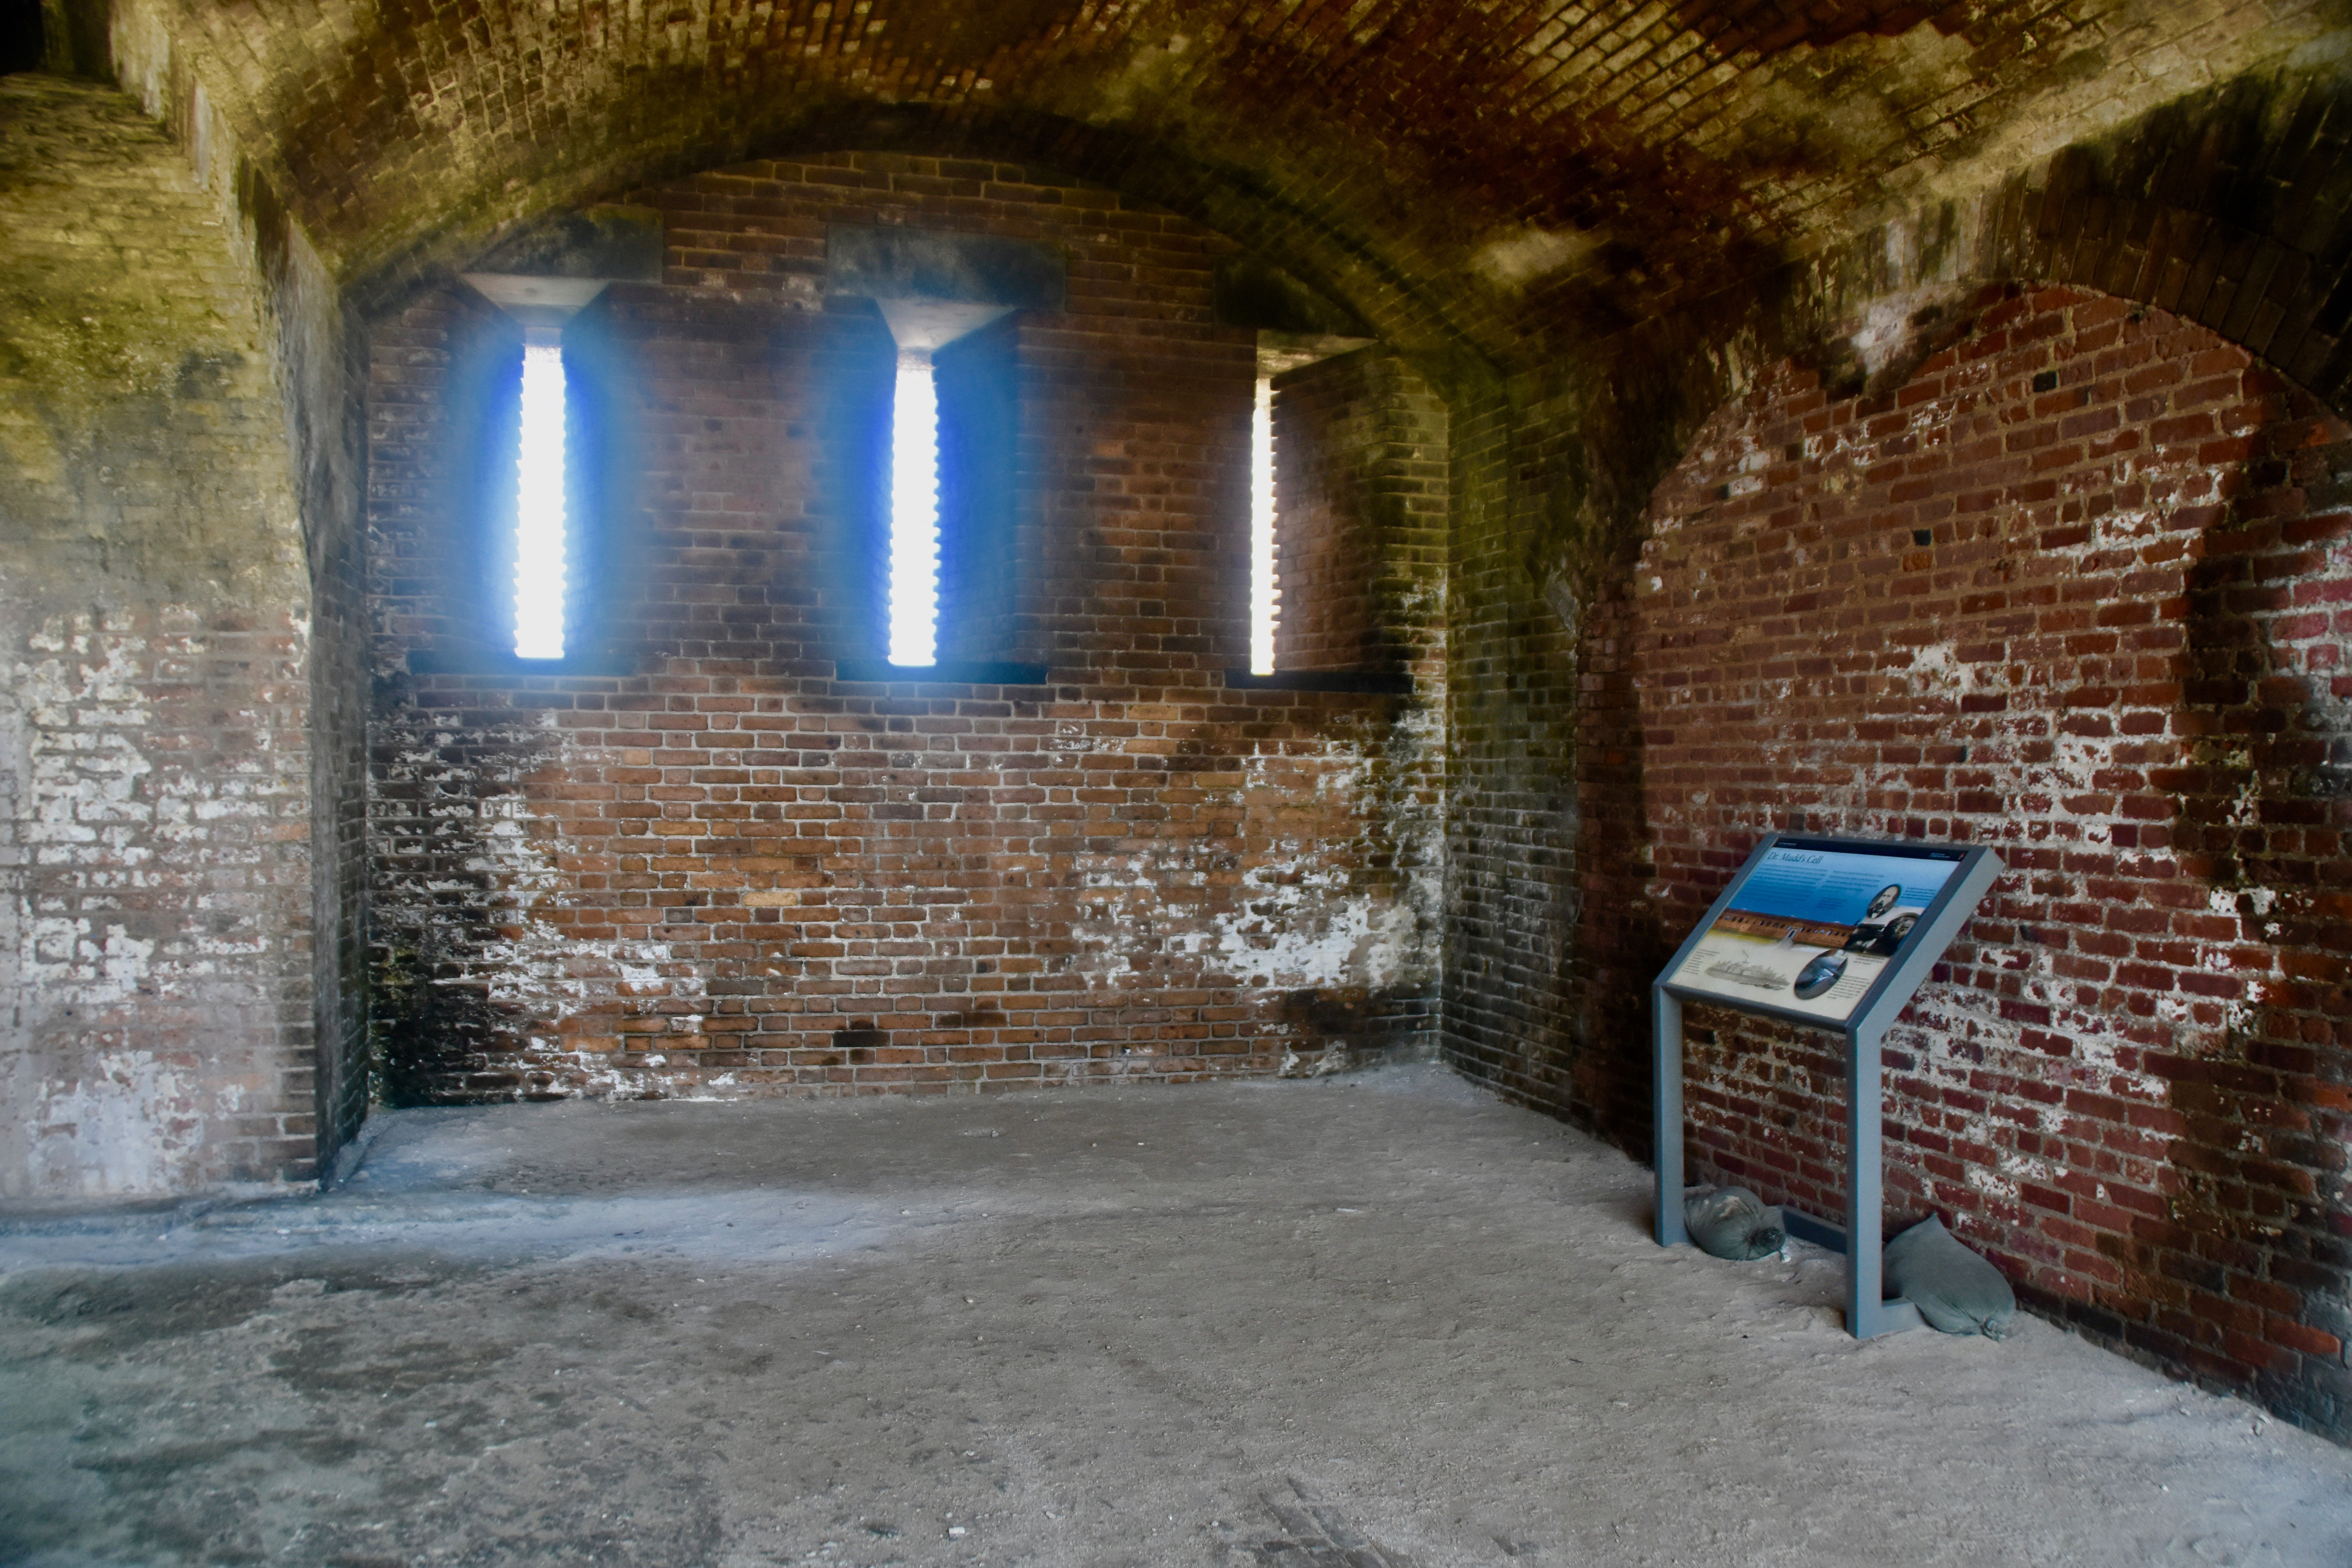 Dr. Mudd's Cell, Dry Tortugas